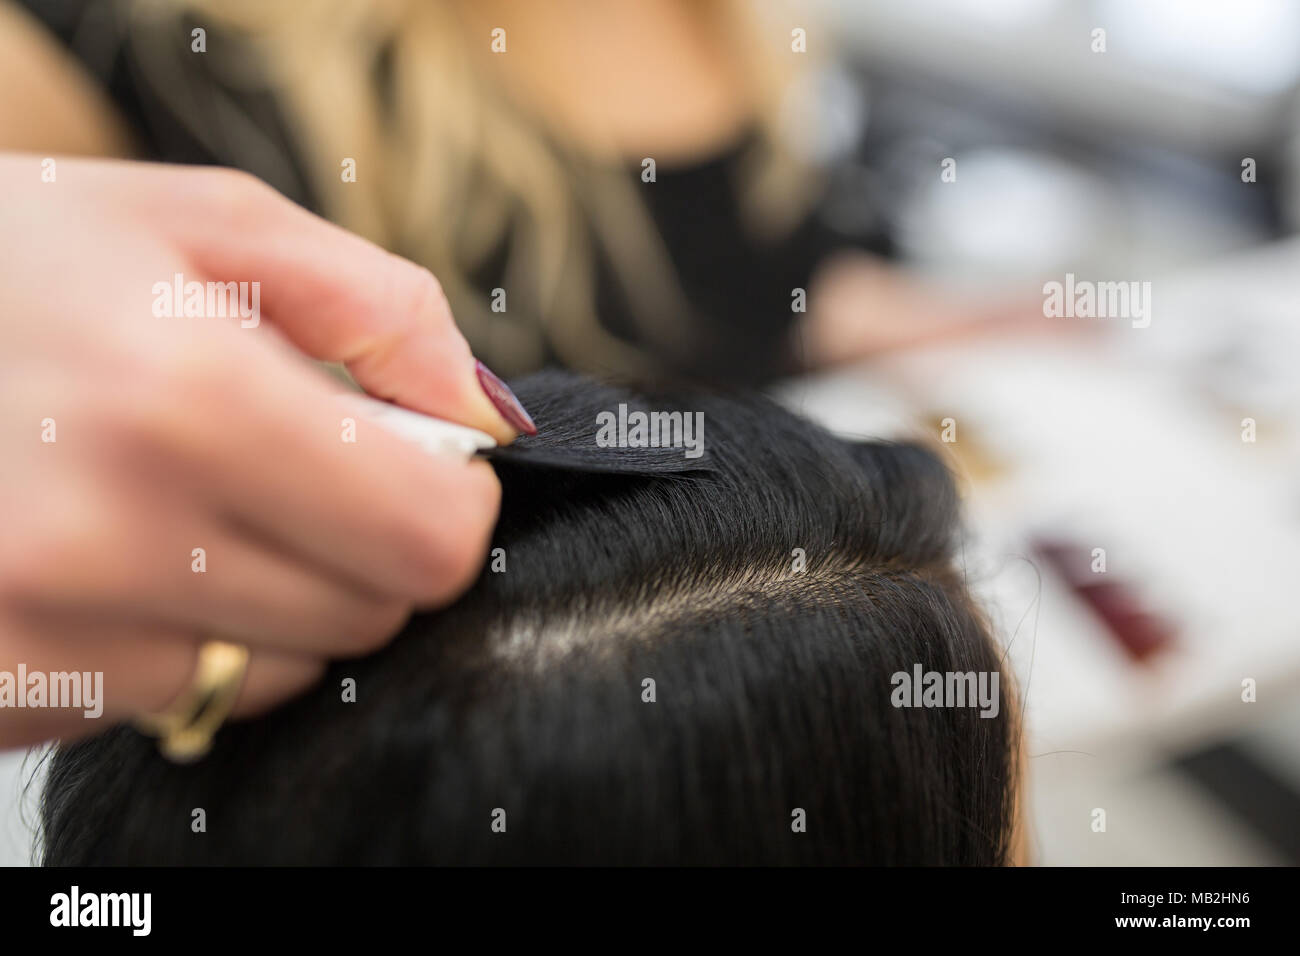 Close up portrait of hairdresser hand putting hair color sample to client head - Stock Image